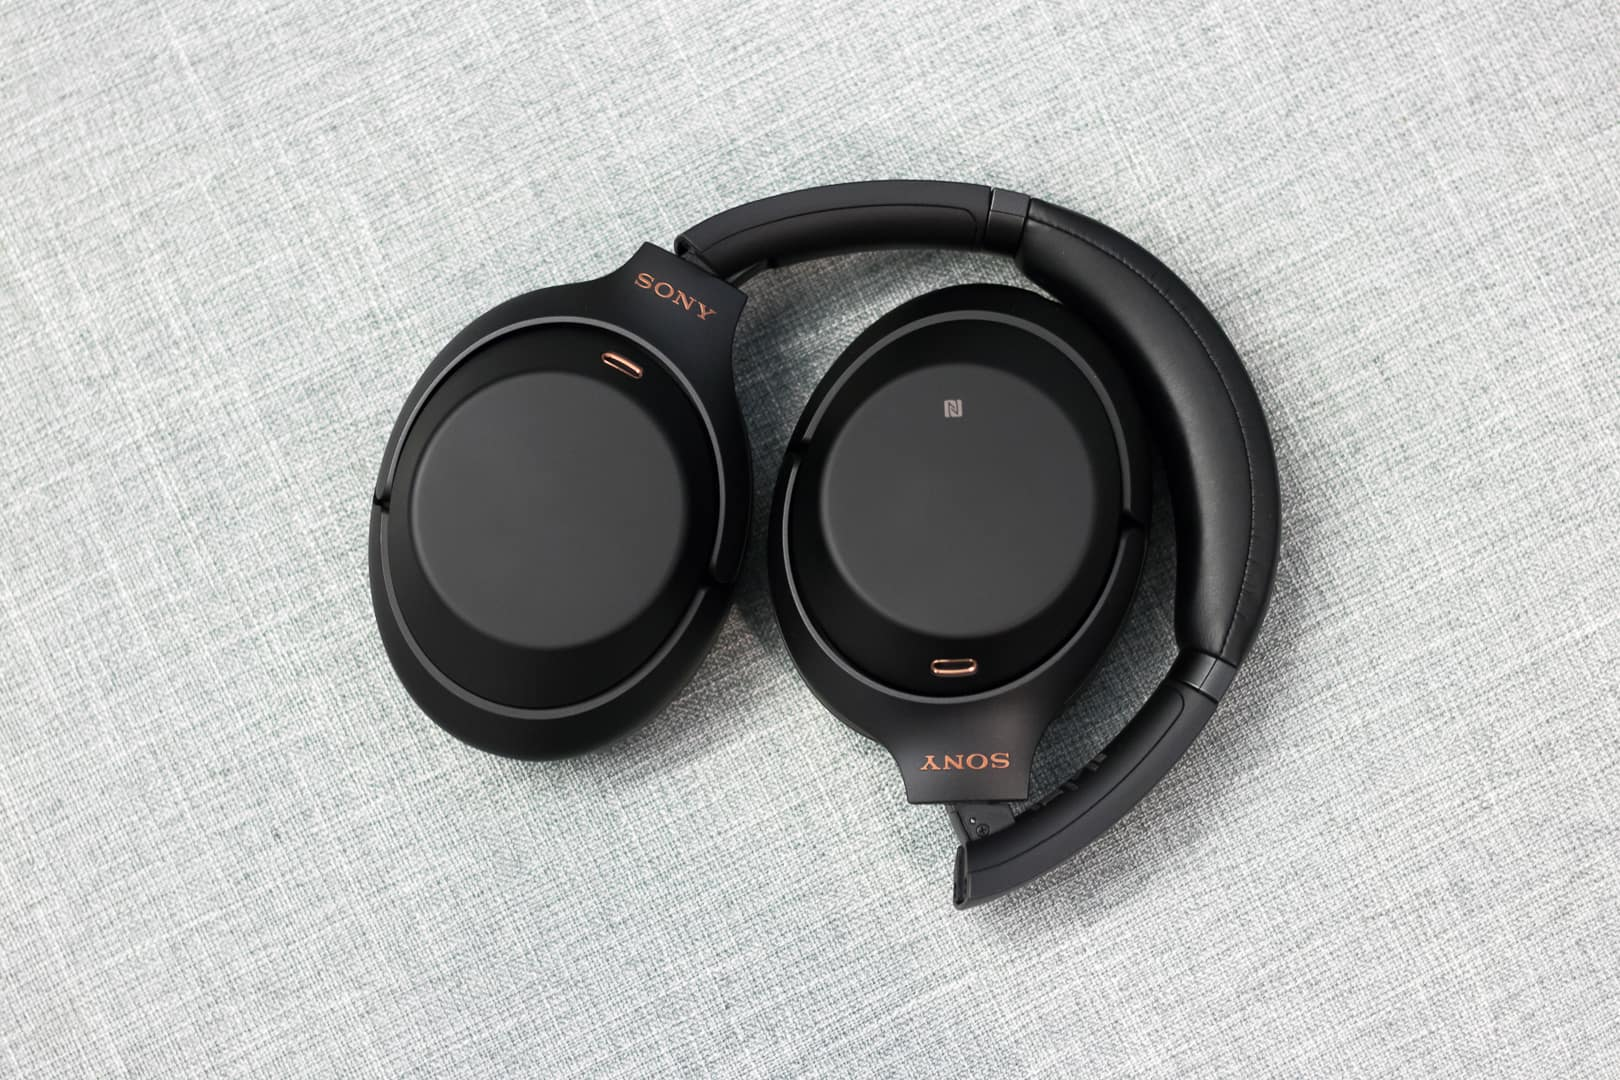 The headphones fold up nicely for easy storage